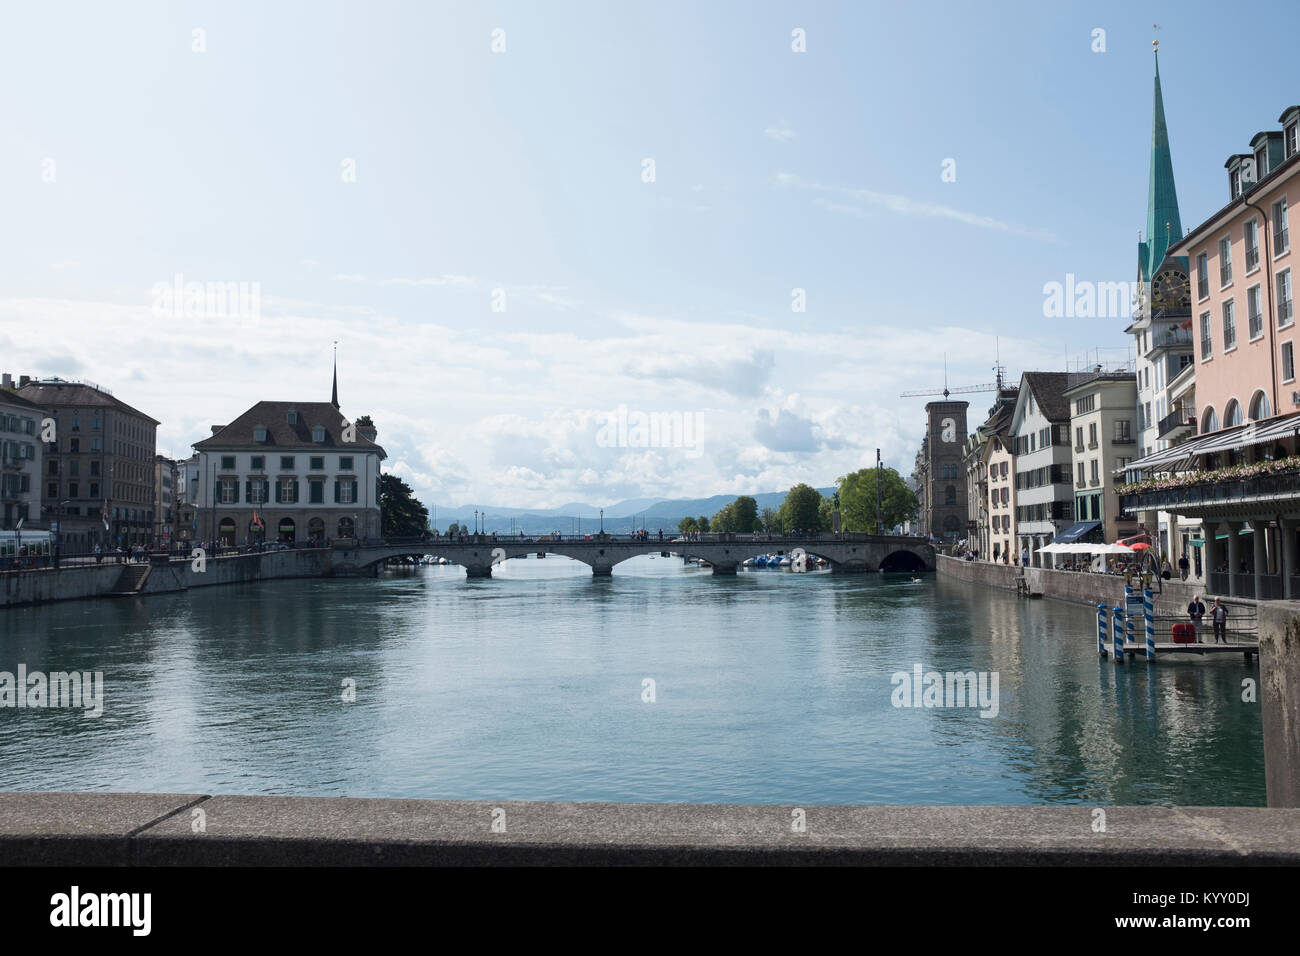 Bridge over Limmat River against sky in city - Stock Image